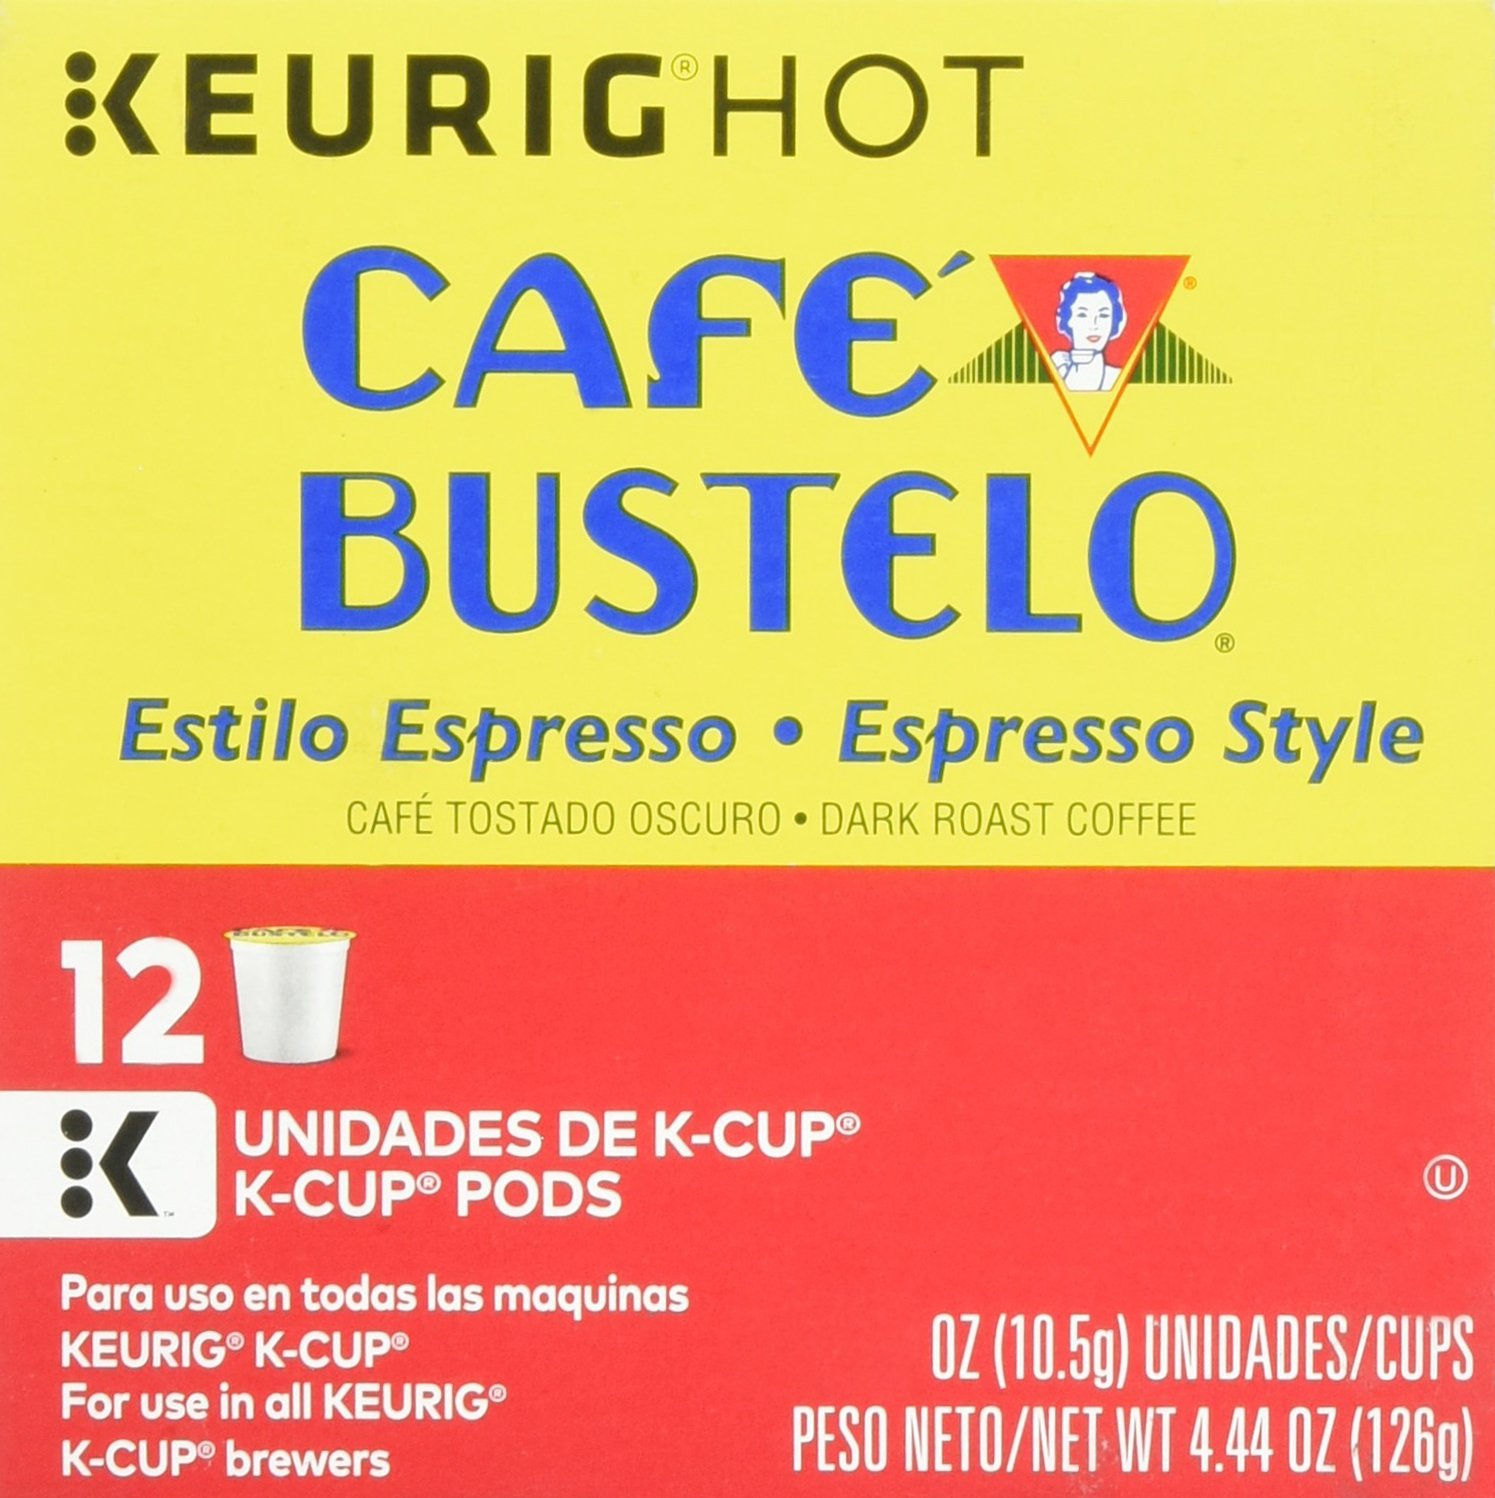 Cafe Bustelo, K-Cup Single Serve, 12 Count, 3.81oz Box (Pack of 3) (100% Colombian): Amazon.com: Grocery & Gourmet Food